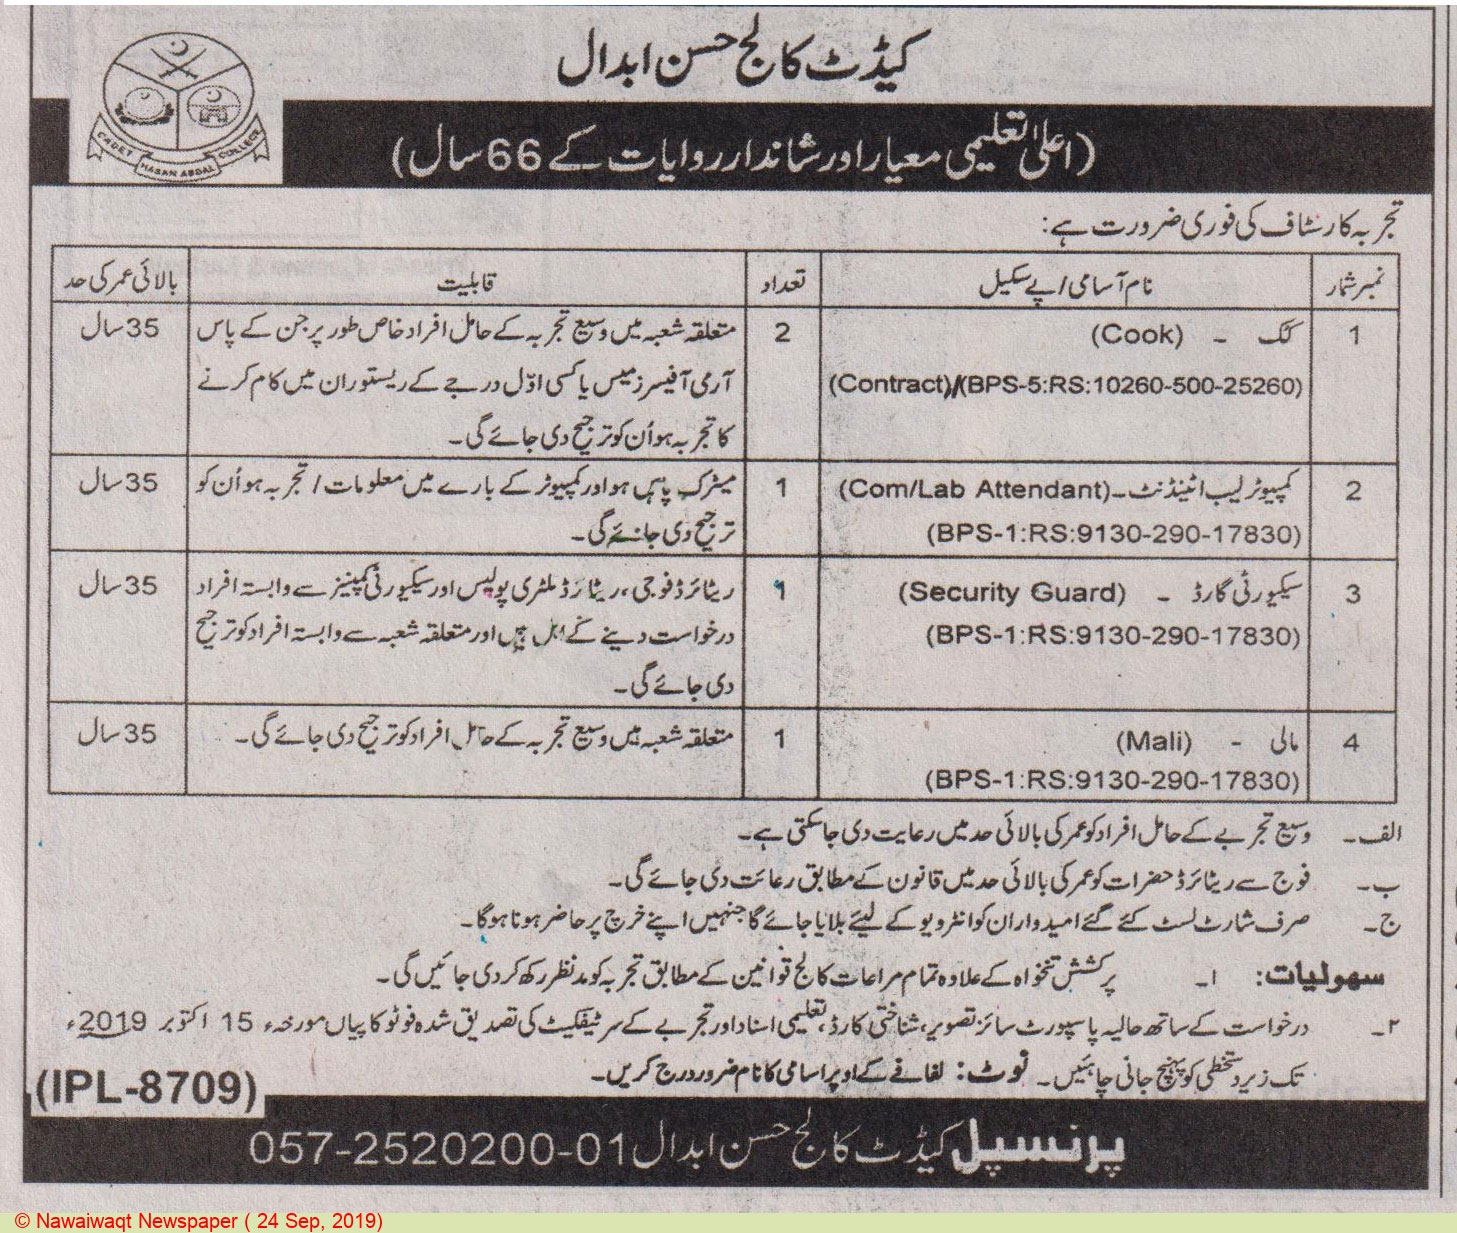 Cadet College - Hassan Abdal Offering Jobs 2019